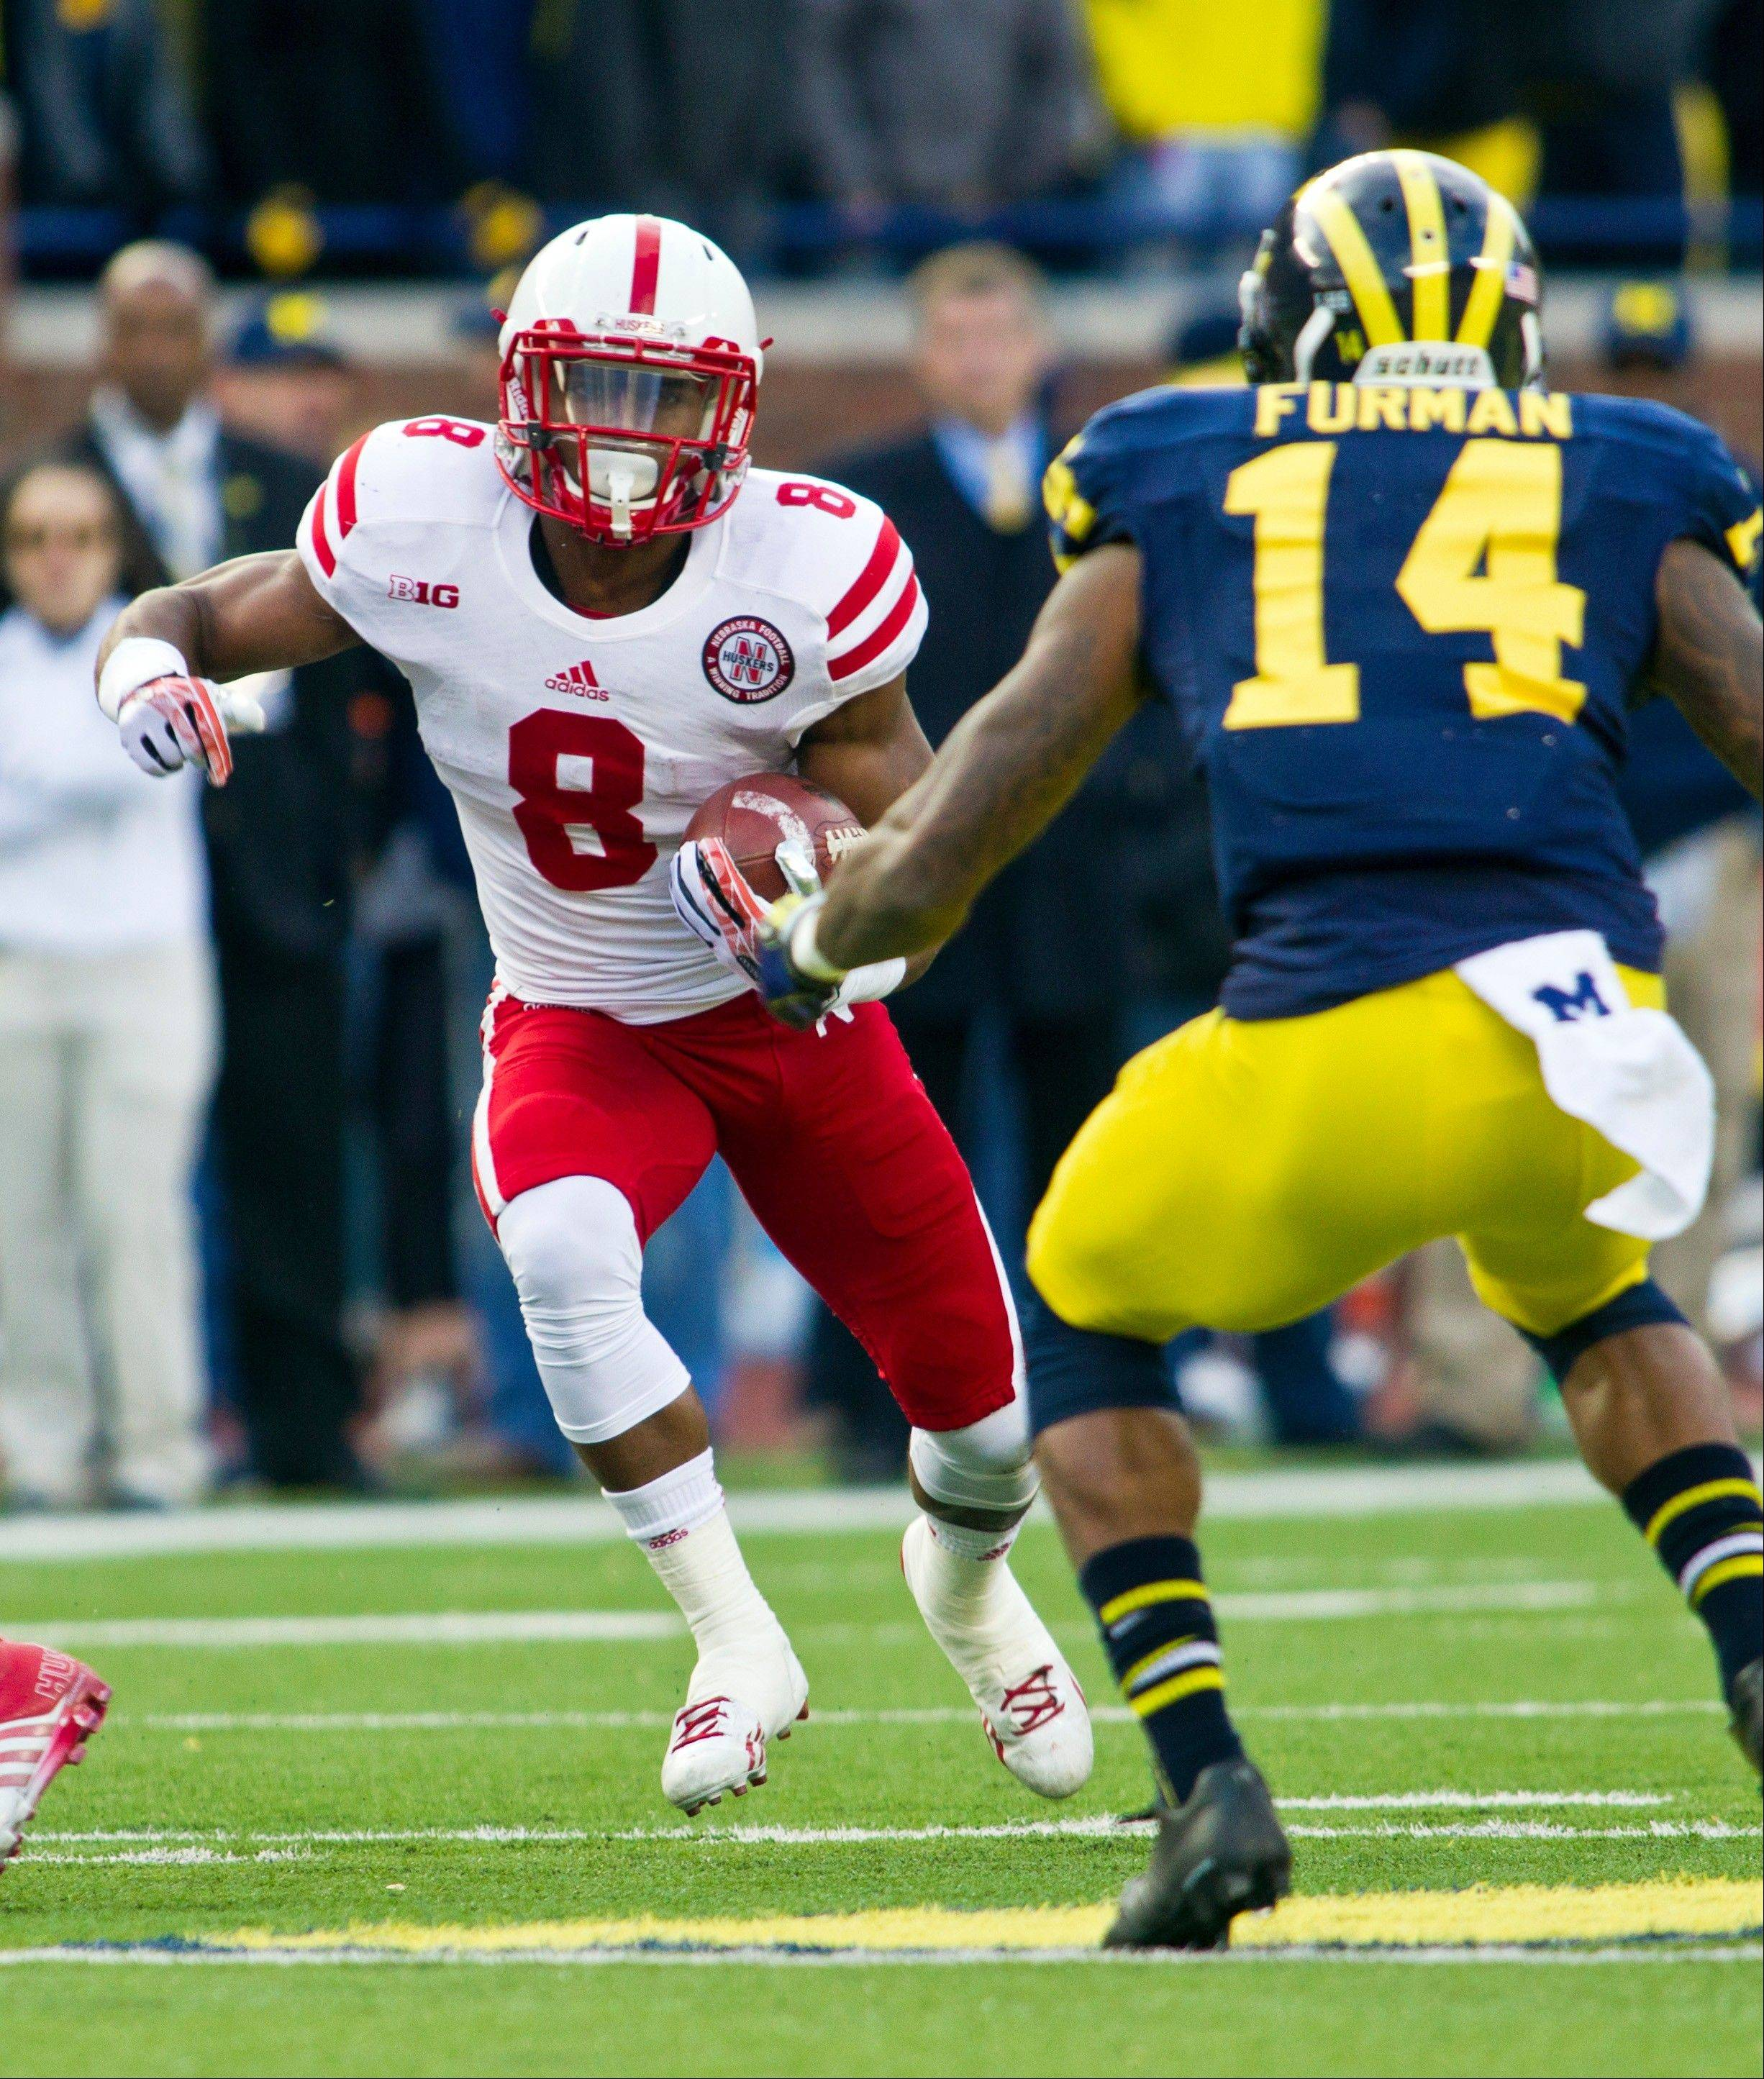 Nebraska running back Ameer Abdullah (8) rushes into coverage by Michigan safety Josh Furman (14) during Saturday�s game in Ann Arbor, Mich. The Huskers beat the Wolverines 17-13.